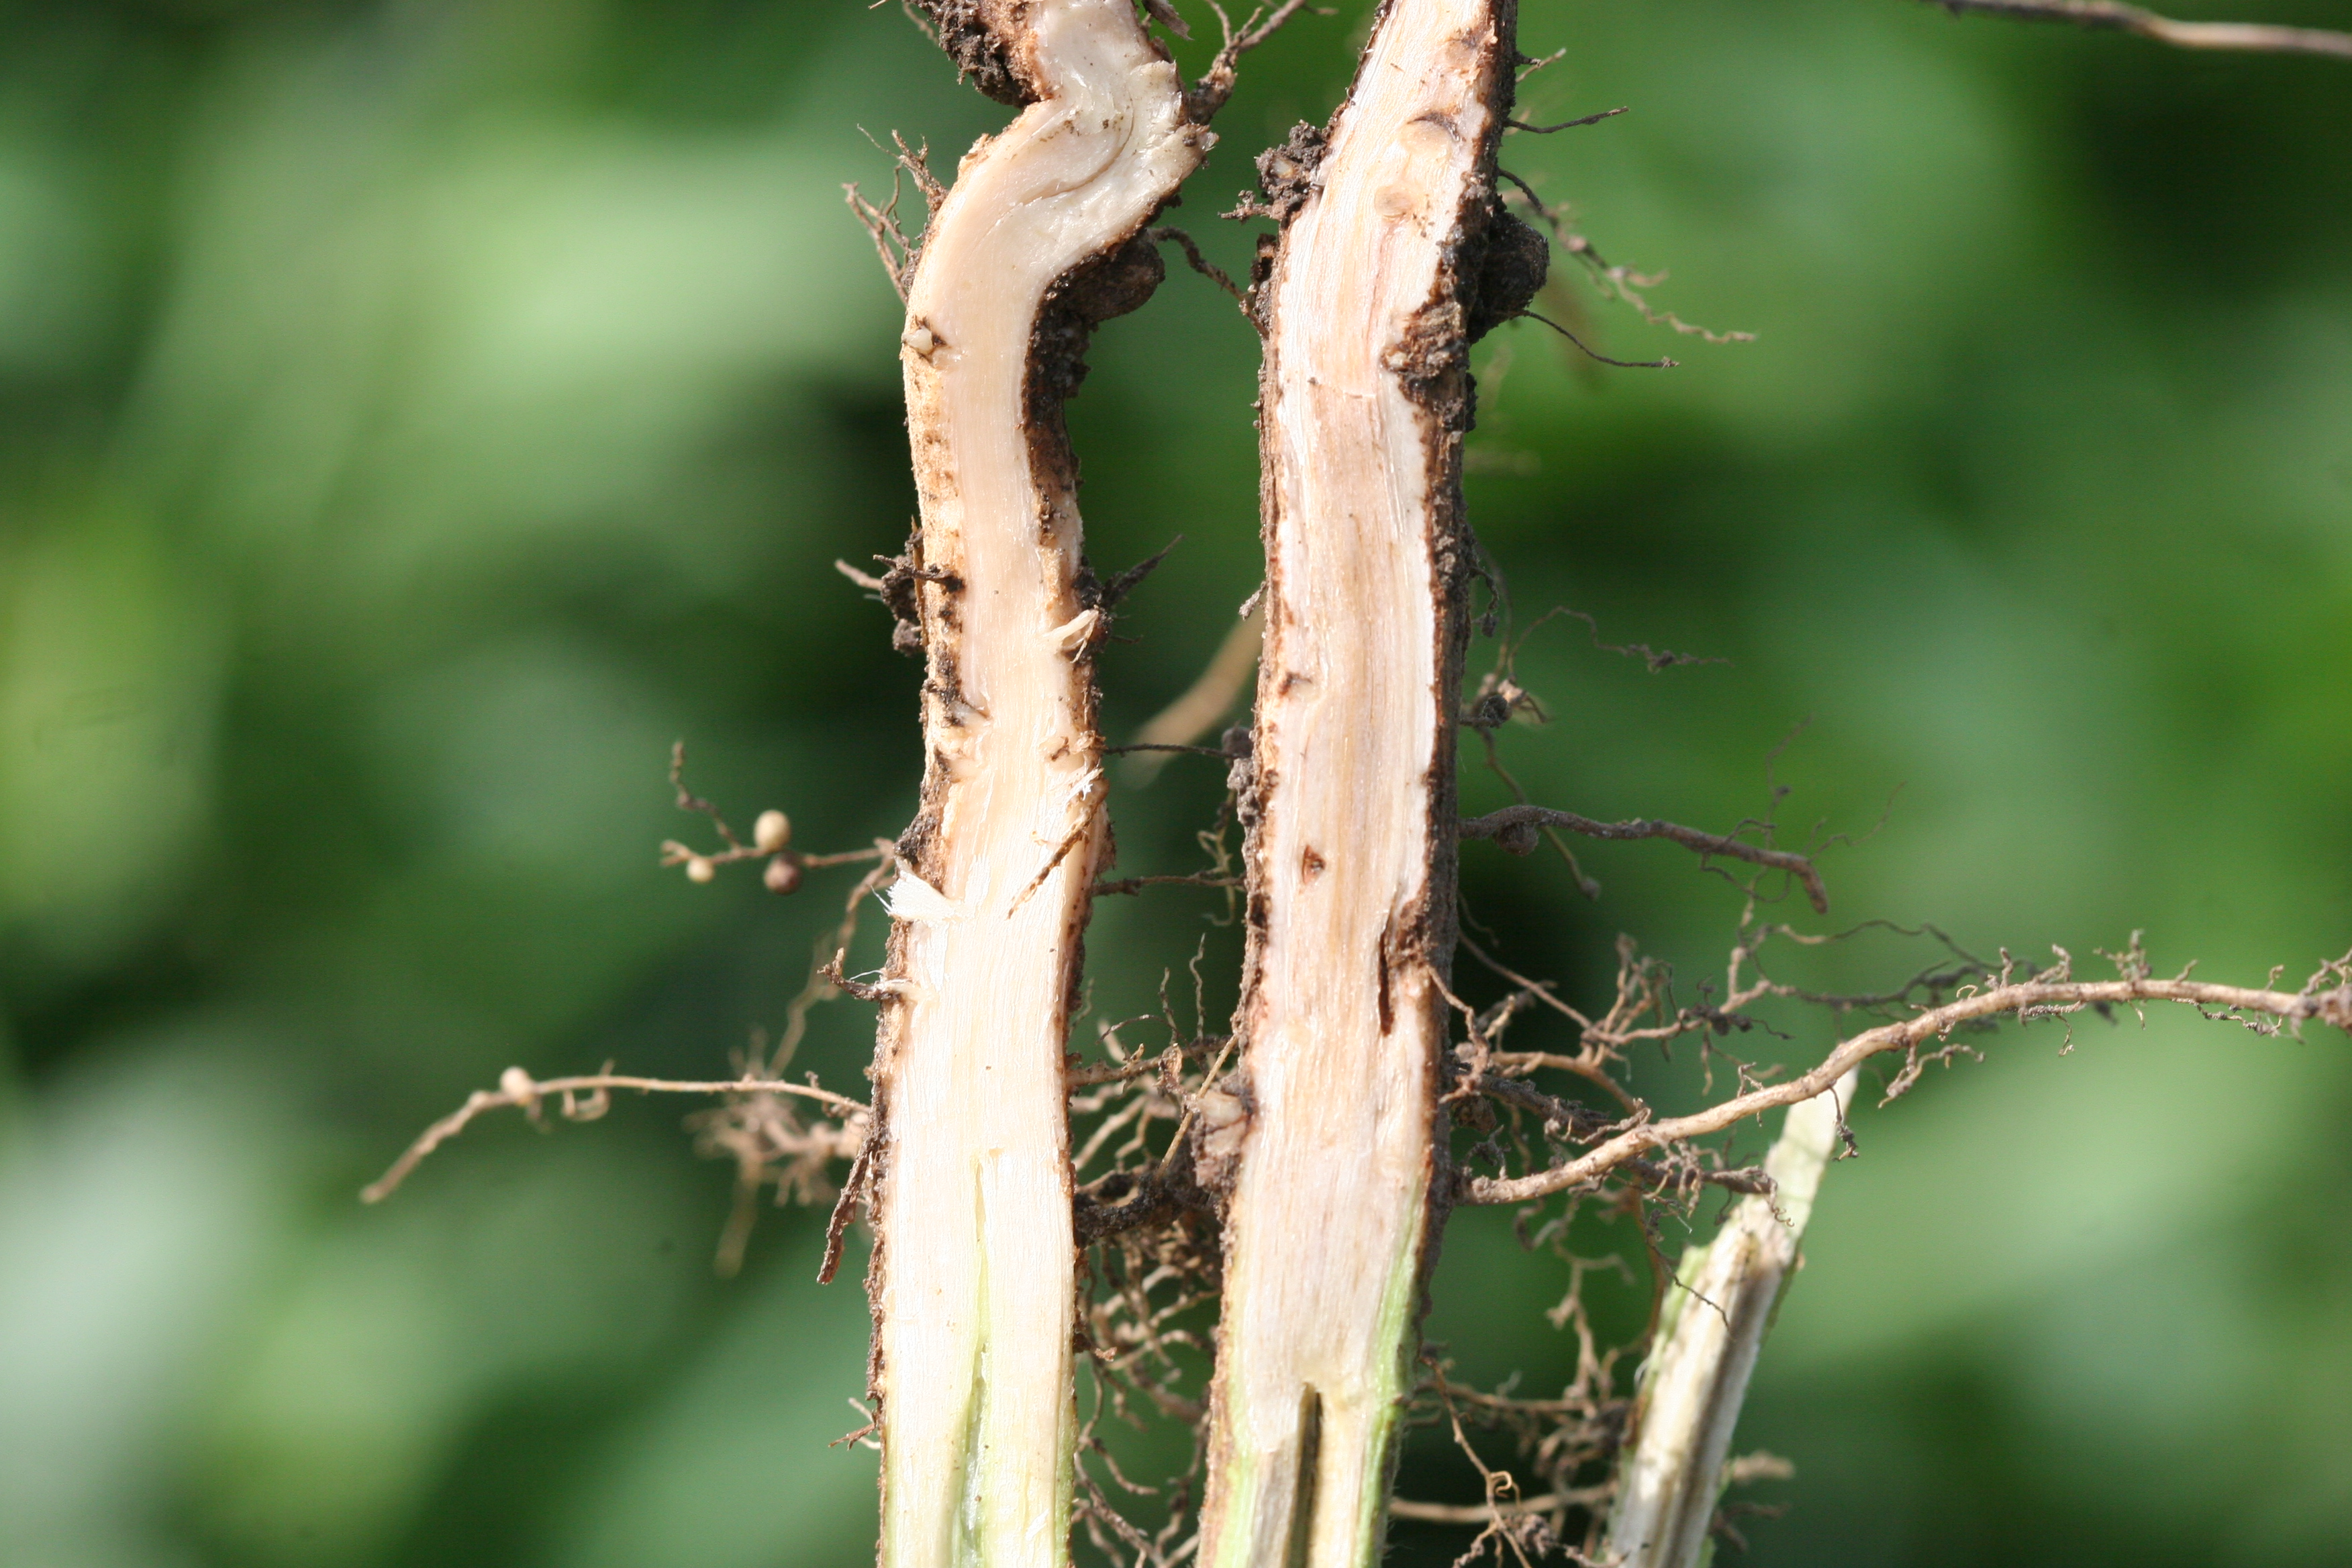 Woody tissue of the taproot is discolored light gray to brown.